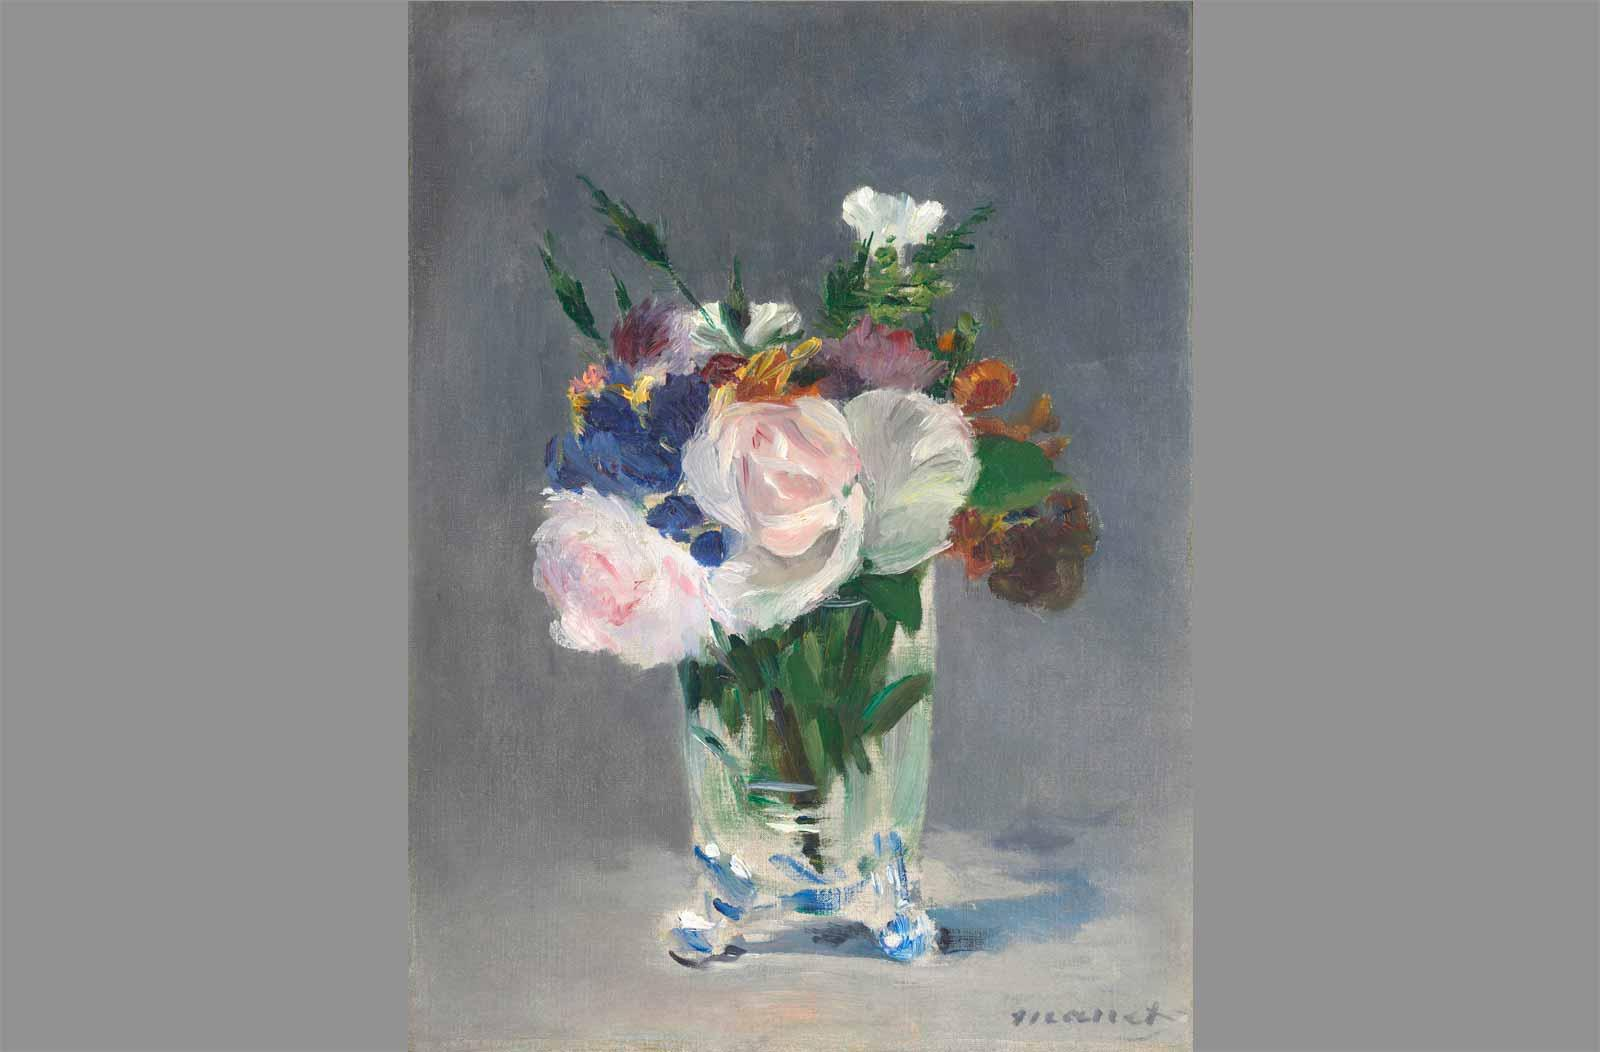 Édouard Manet. Flowers in a Crystal Vase, about 1882.